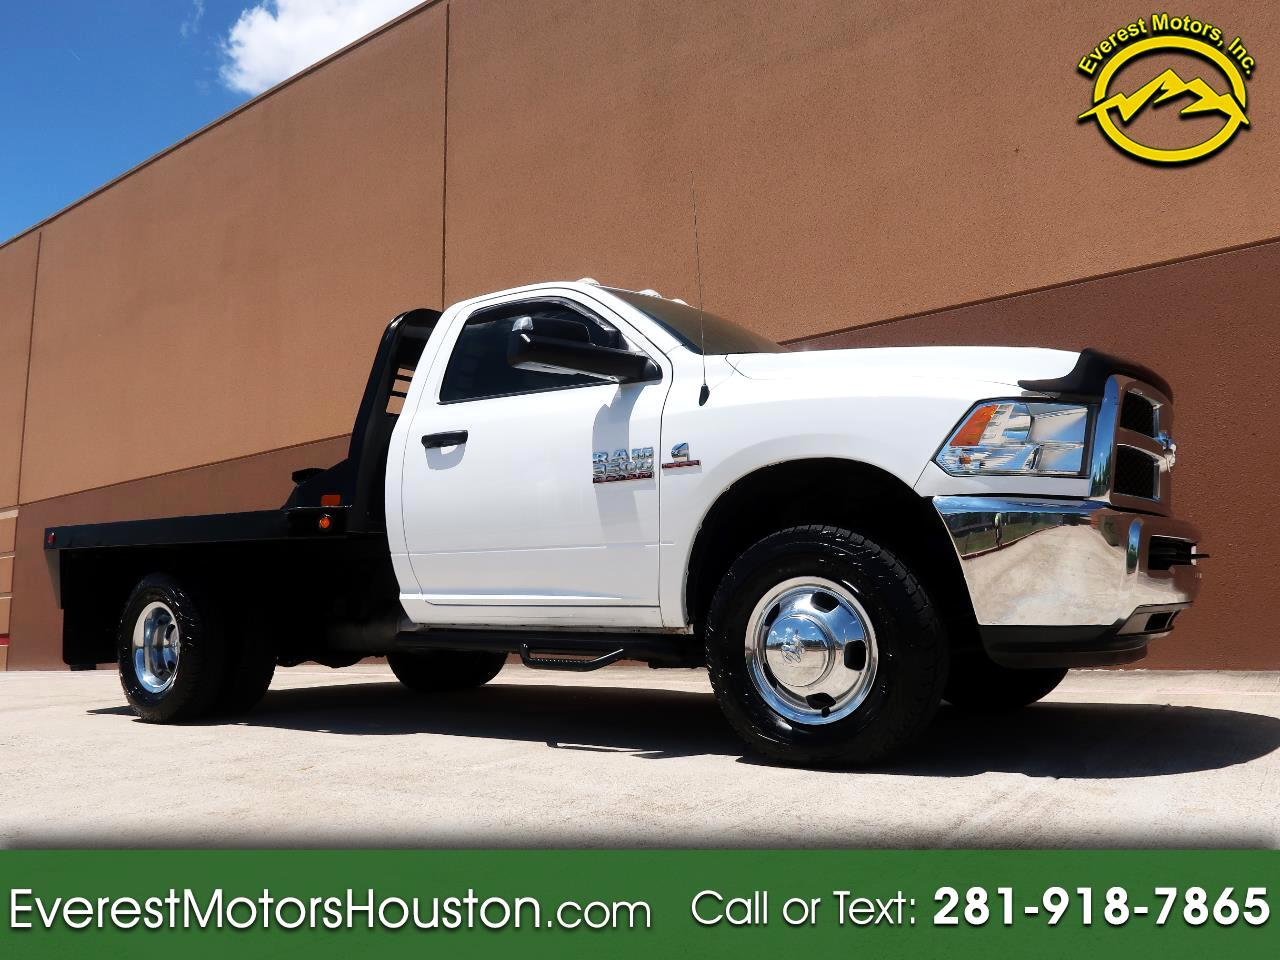 2015 Dodge Ram 3500 TRADESMAN REGULAR CAB LWB 4WD DRW FLAT BED